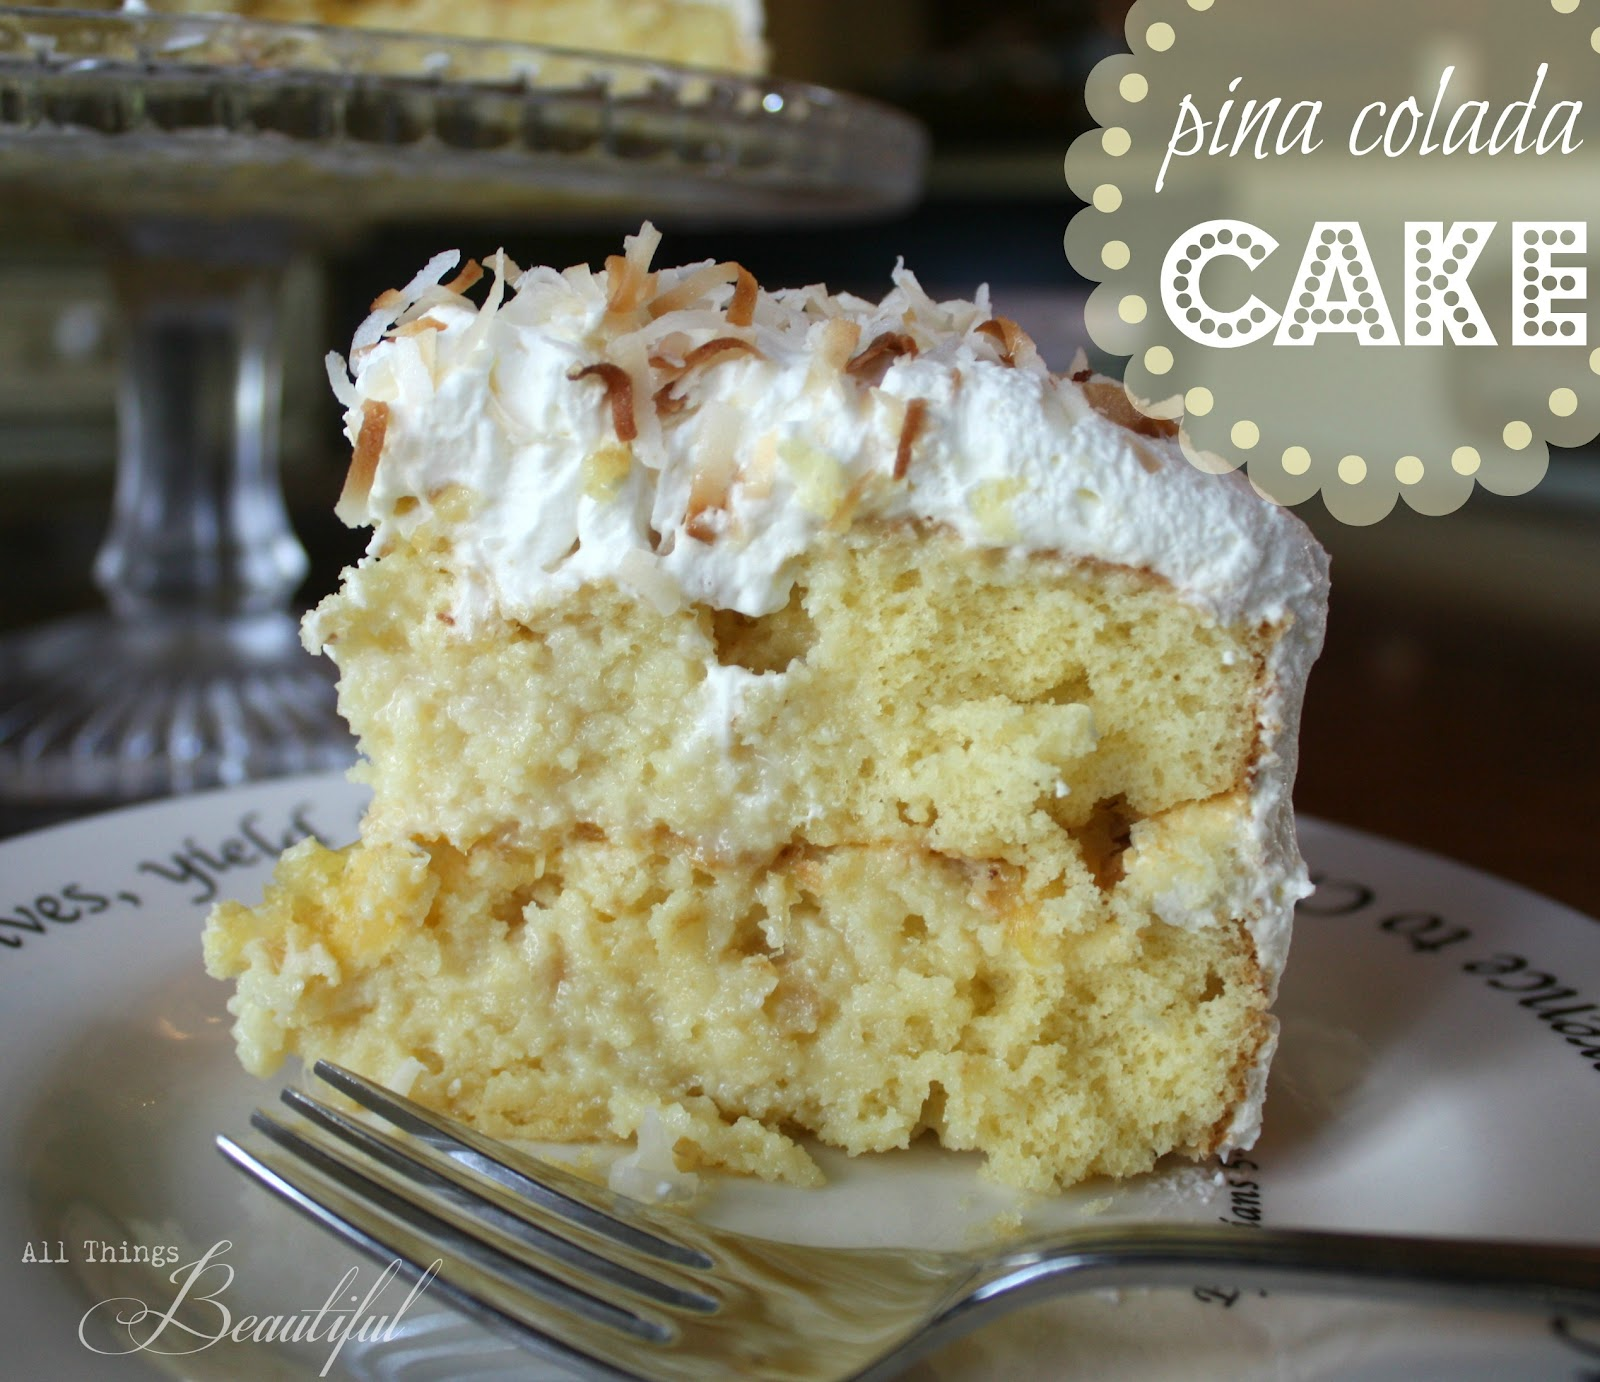 All Things Beautiful: Pina Colada Cake {Sweet Birthday}